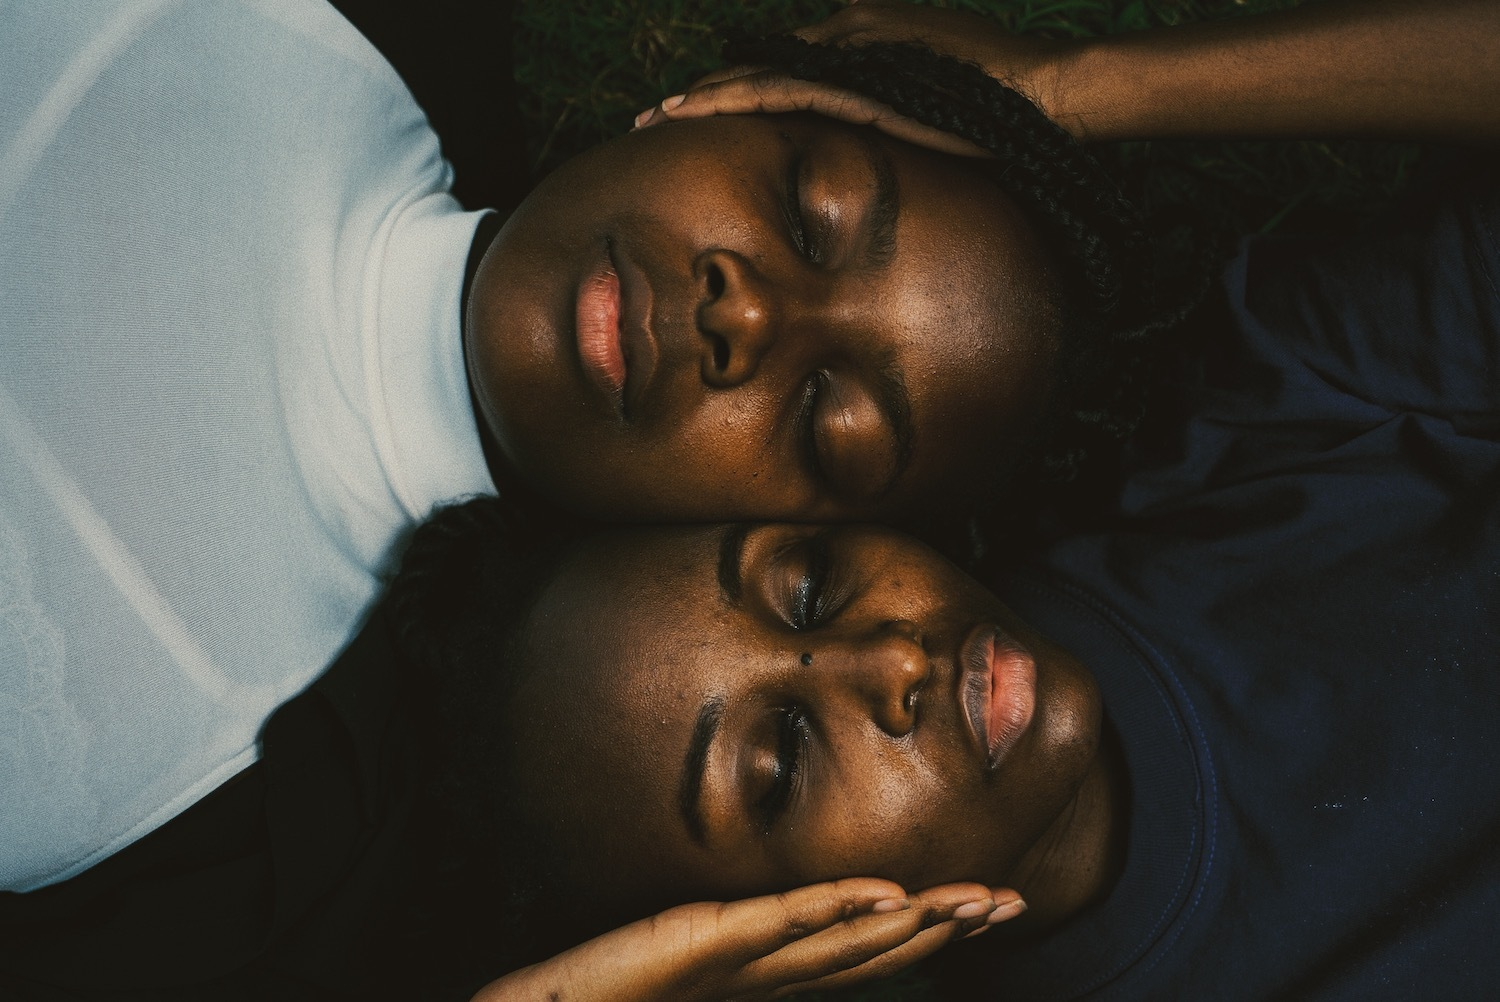 Two young women rest with their heads next to each other and eyes closed, with one hand on the other's cheek.